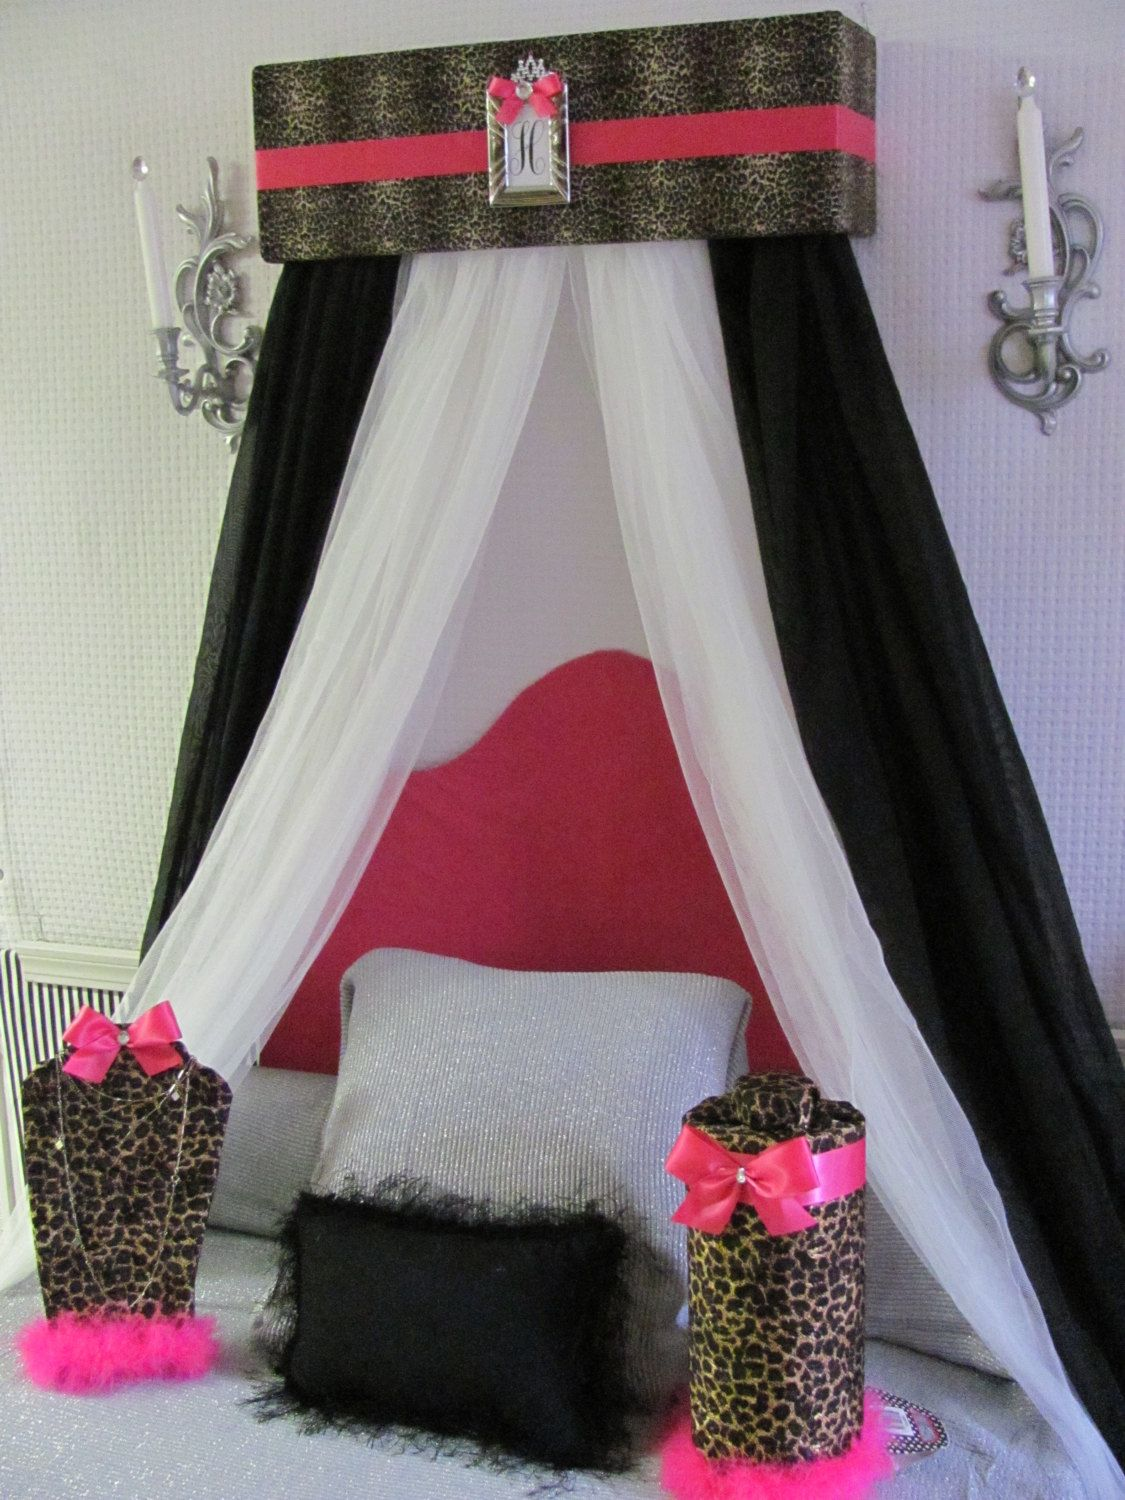 Cheetah Hot Pink Bed Canopy Crib Nursery Crown Animal Print Leopard Teester Cornice Valance Princess Silver Upholstered So Zoey Boutique Nwt By